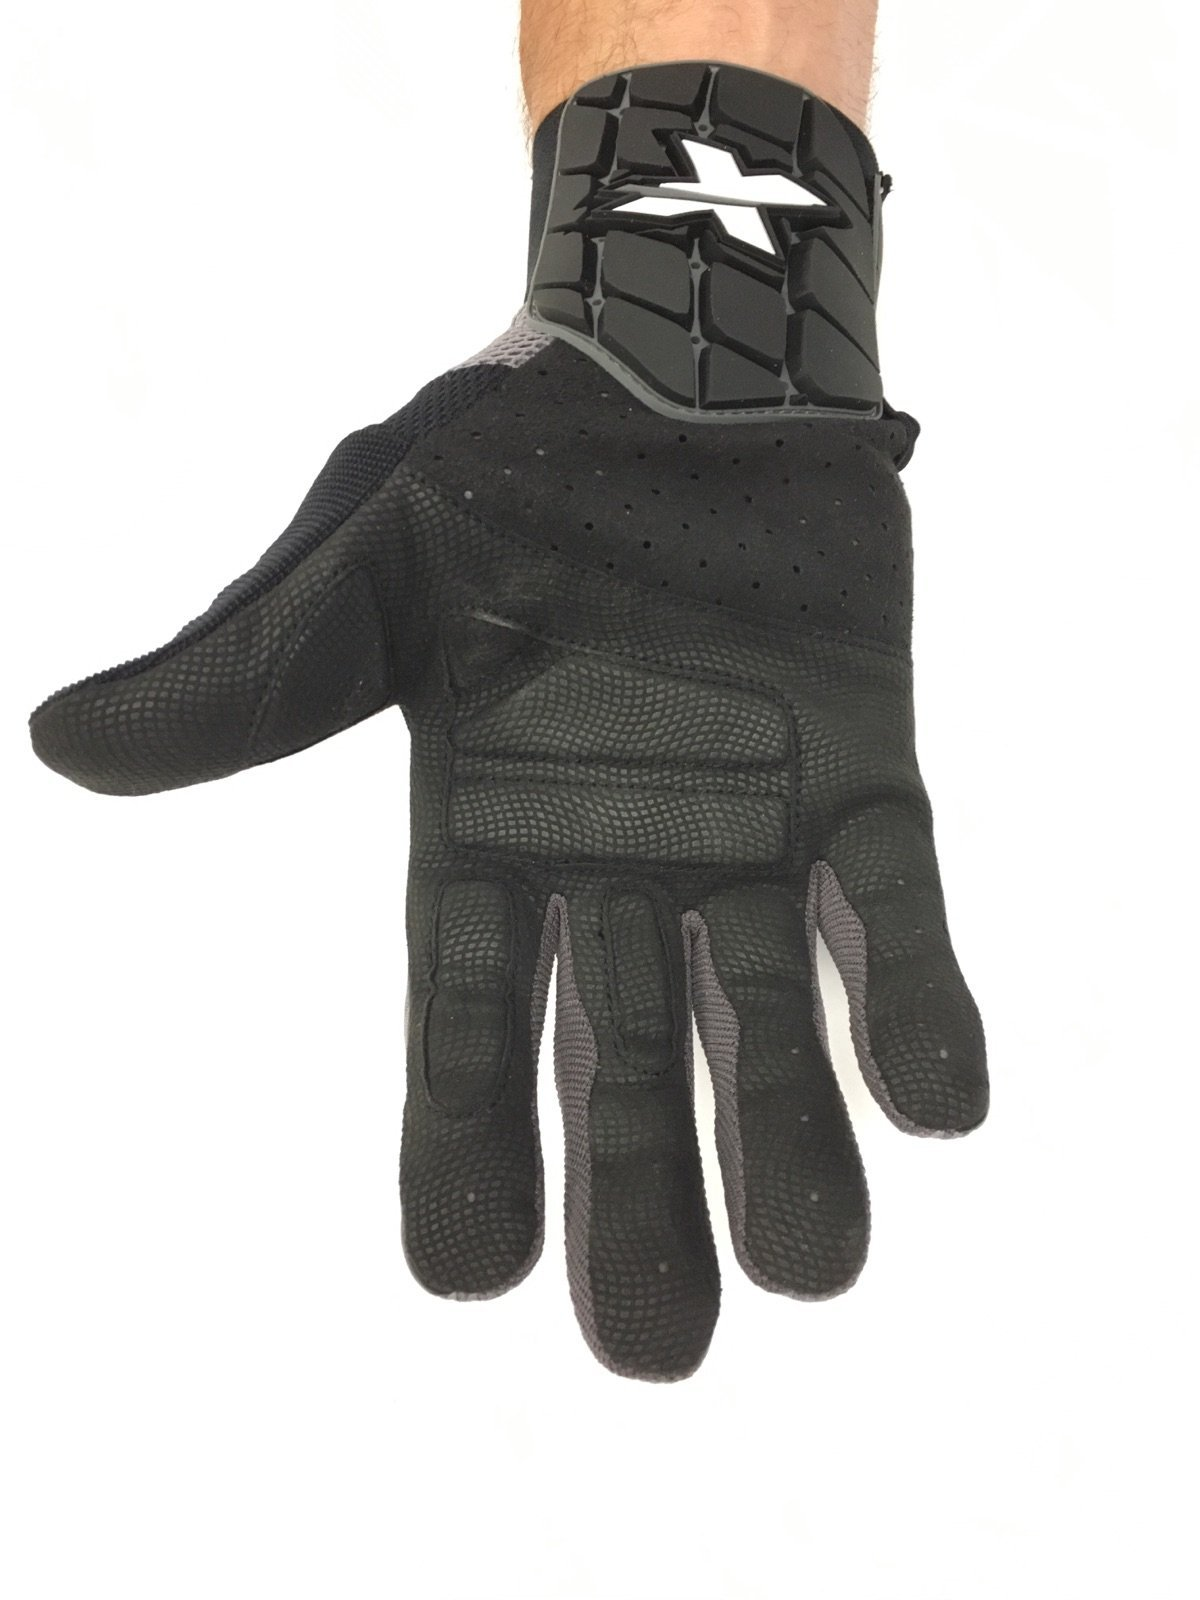 Xprotex 17 Reaktr Glove (Right Hand), Black, Small by Xprotex